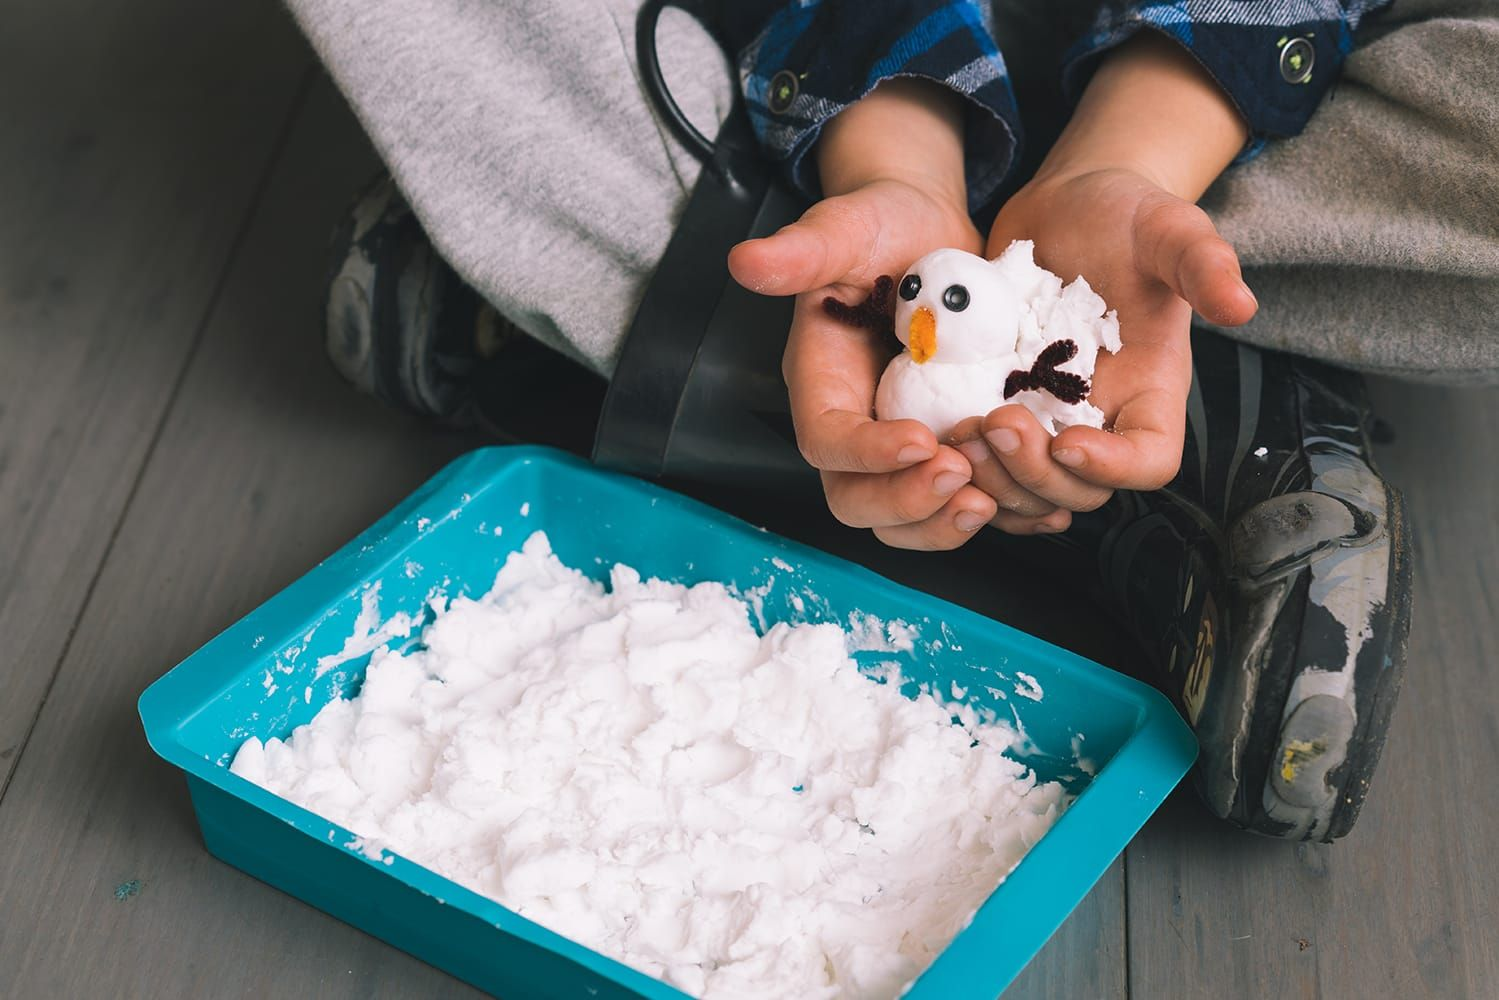 How to Make Fake Snow Sensory snow, Craft activities for